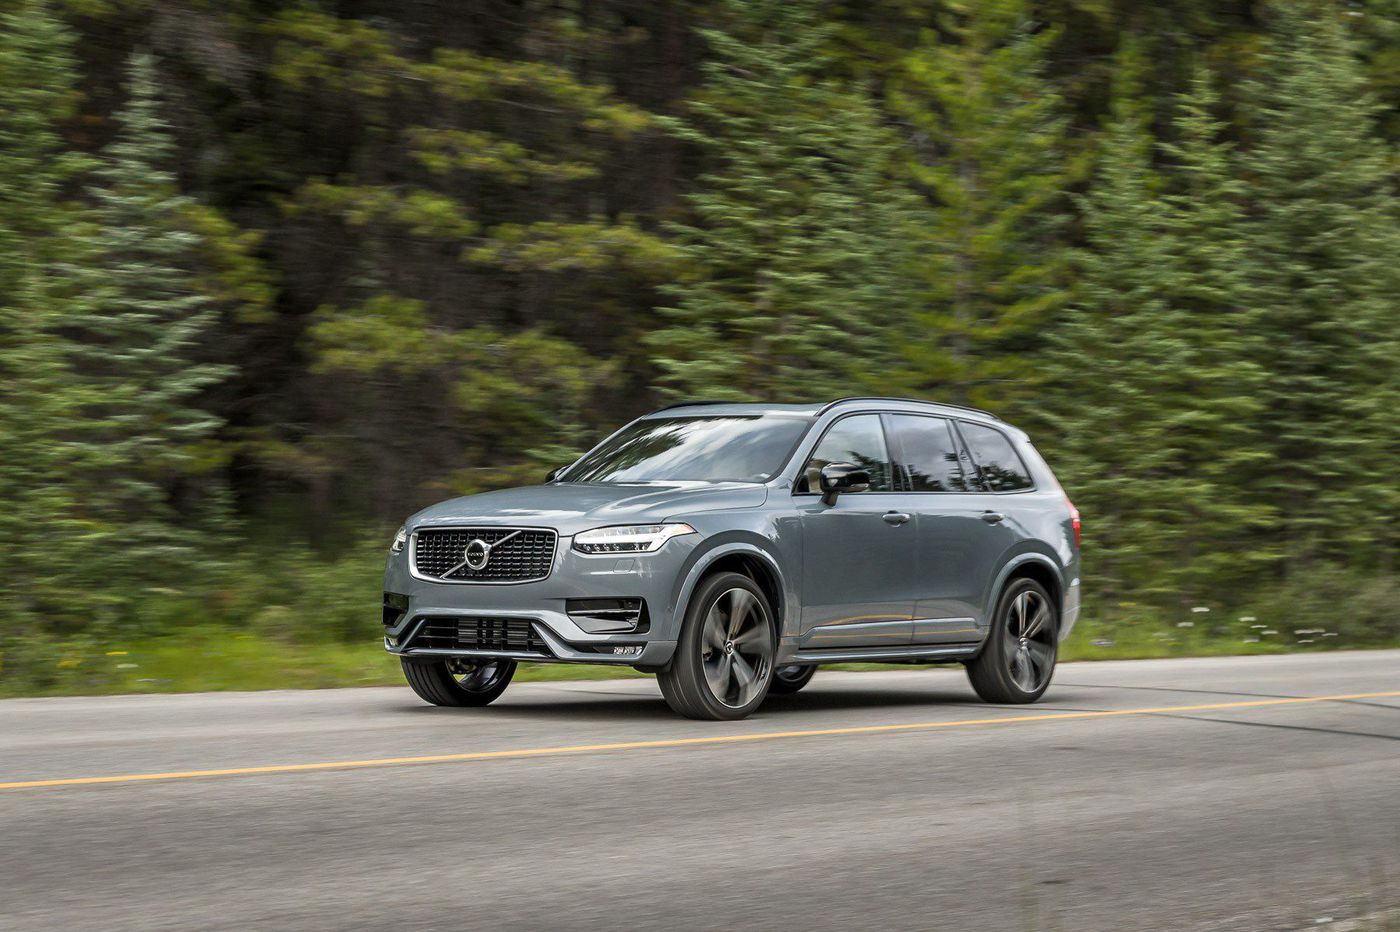 Plug-in Volvo XC90 offers luxury and speed, but with a touch of worry